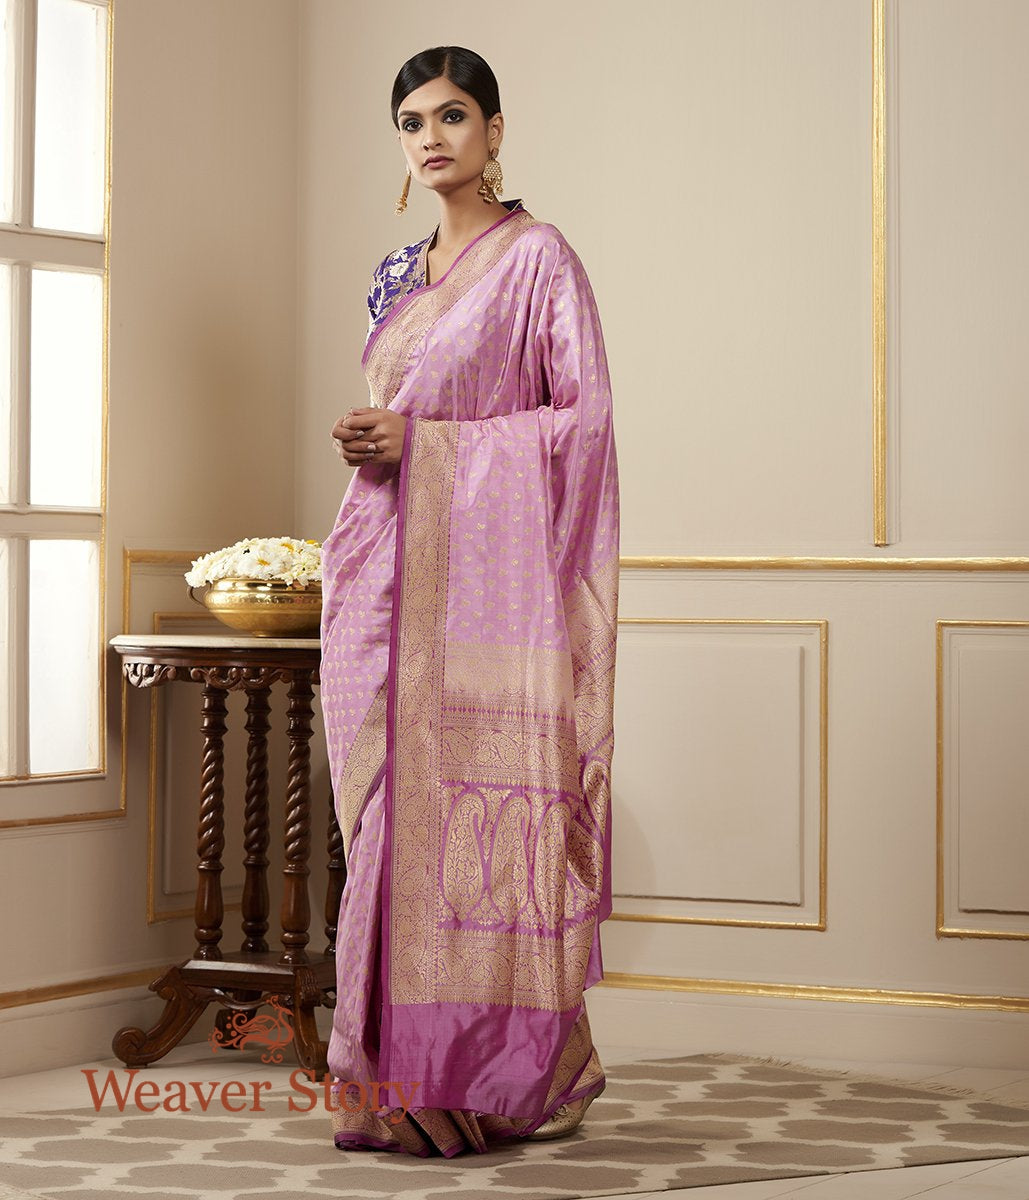 Handwoven Lilac Pure Silk Saree with Paisley Booti